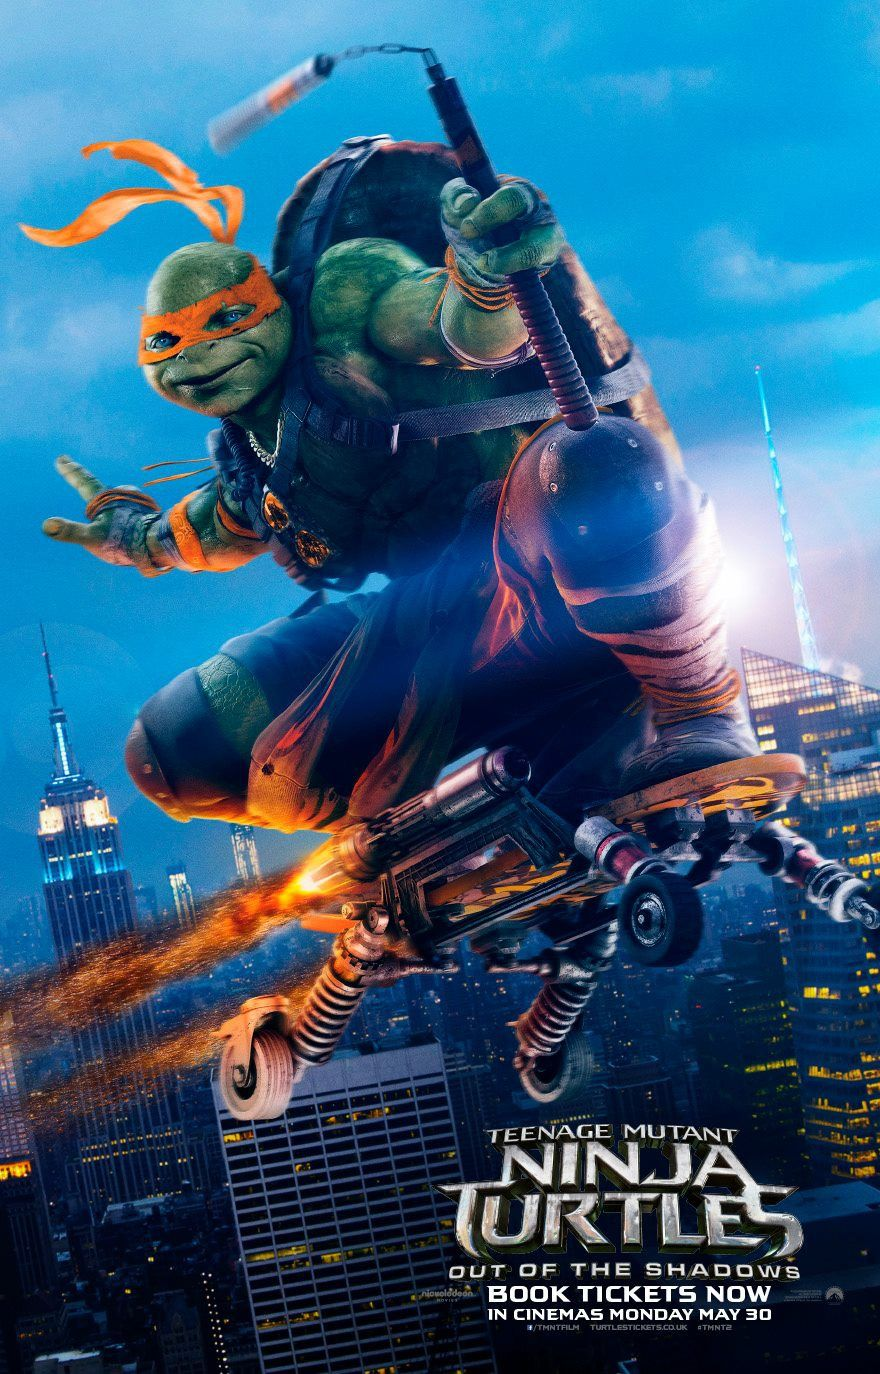 Return To The Main Poster Page For Teenage Mutant Ninja Turtles Out Of The Shadows Teenage Mutant Ninja Turtles Movie Ninja Turtles Ninja Turtles Movie